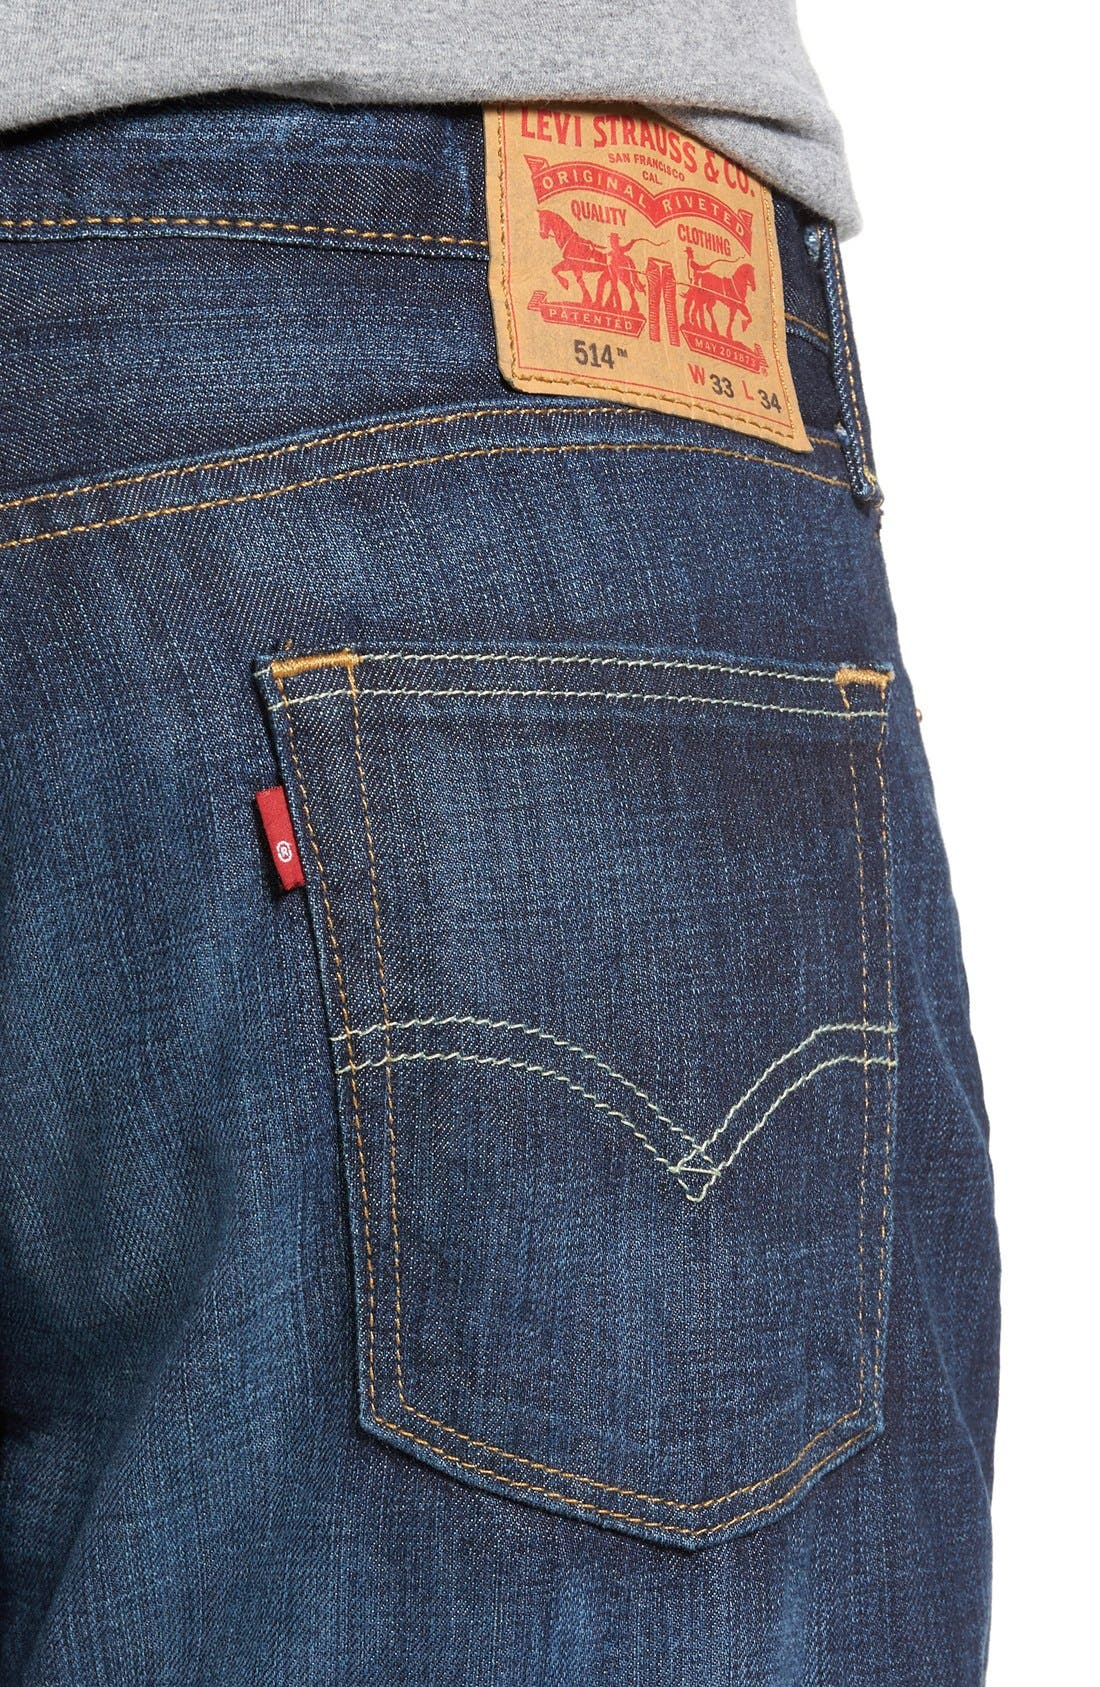 514<sup>™</sup> Straight Leg Jeans,                             Alternate thumbnail 3, color,                             SHOESTRING